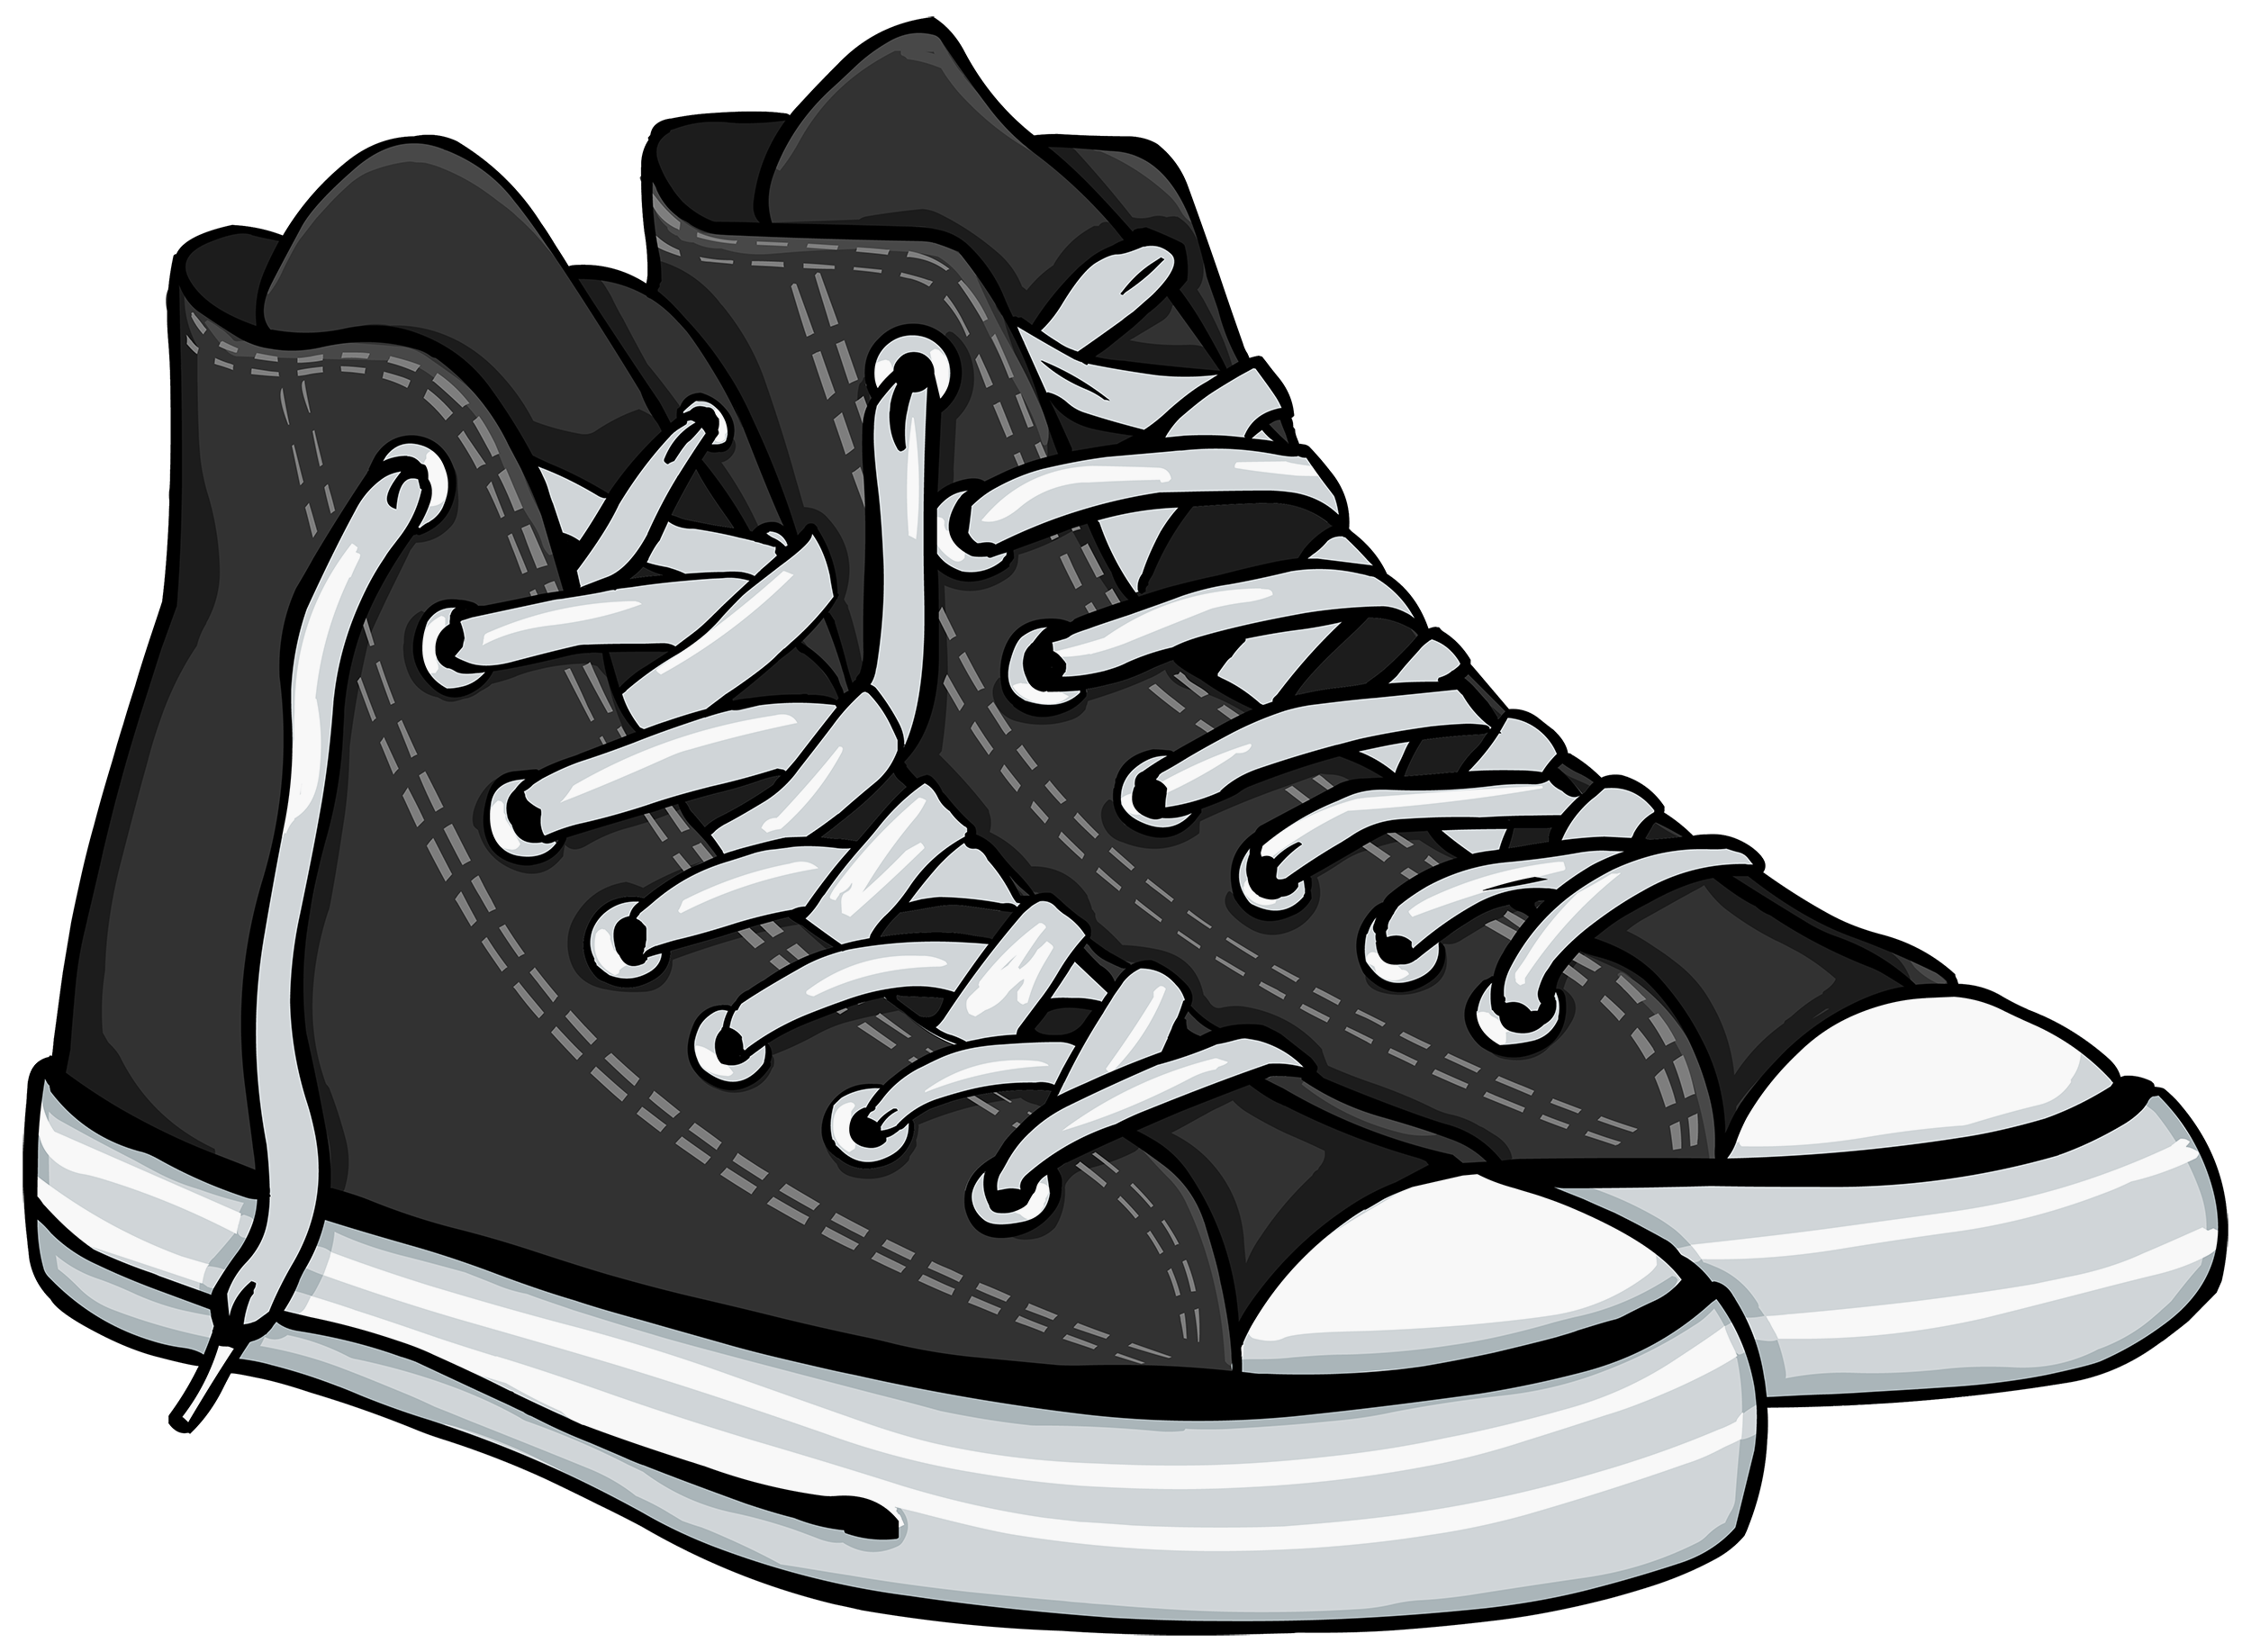 Download Sneaker PNG File.